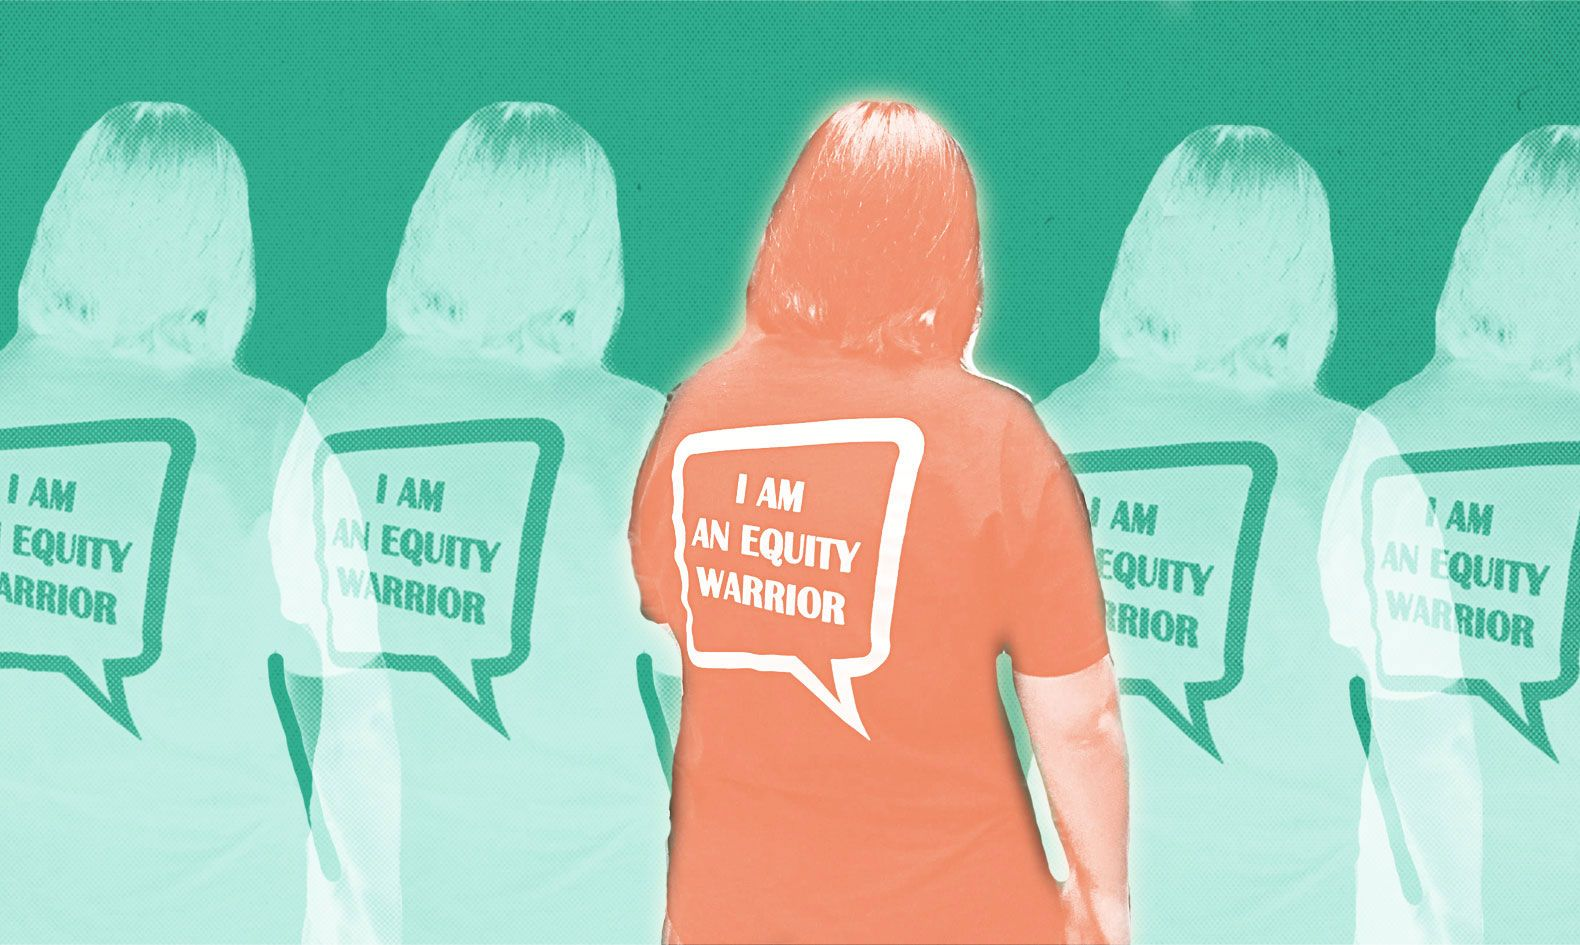 Master's students in the program deemed themselves Equity Warriors and created matching shirts.